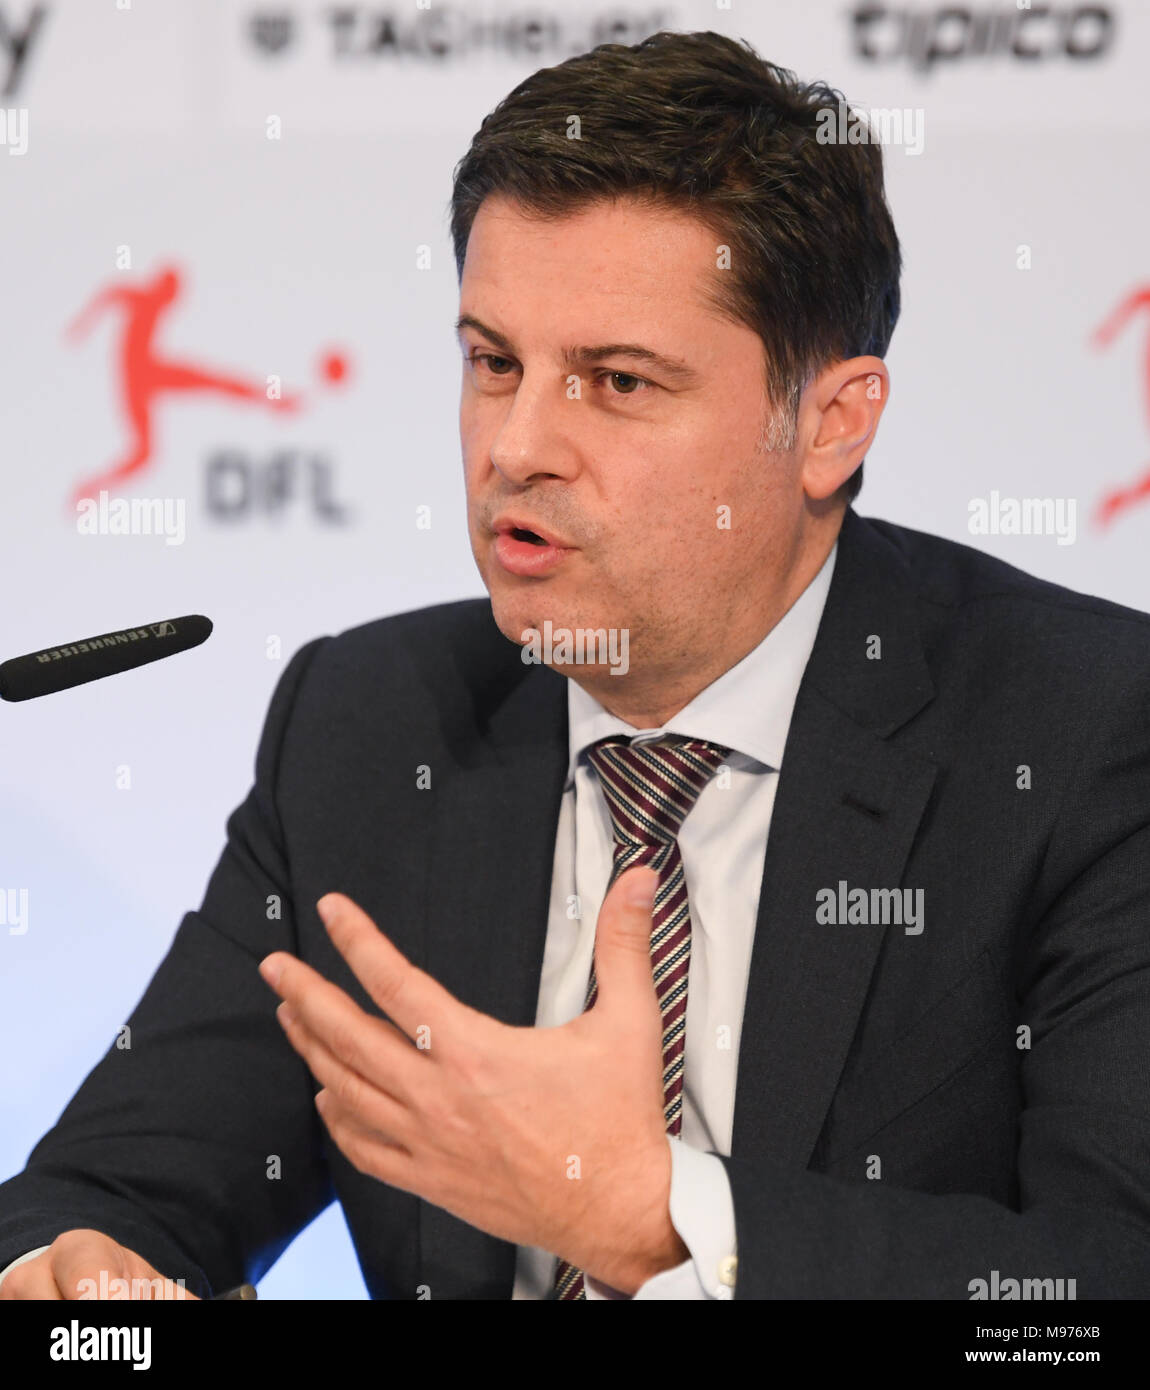 22 March 2018, Germany, Frankfurt/Main: Christian Seifert, CEO of the German Soccer League (DFL), speaks at a press conference. Photo: Arne Dedert/dpa - Stock Image